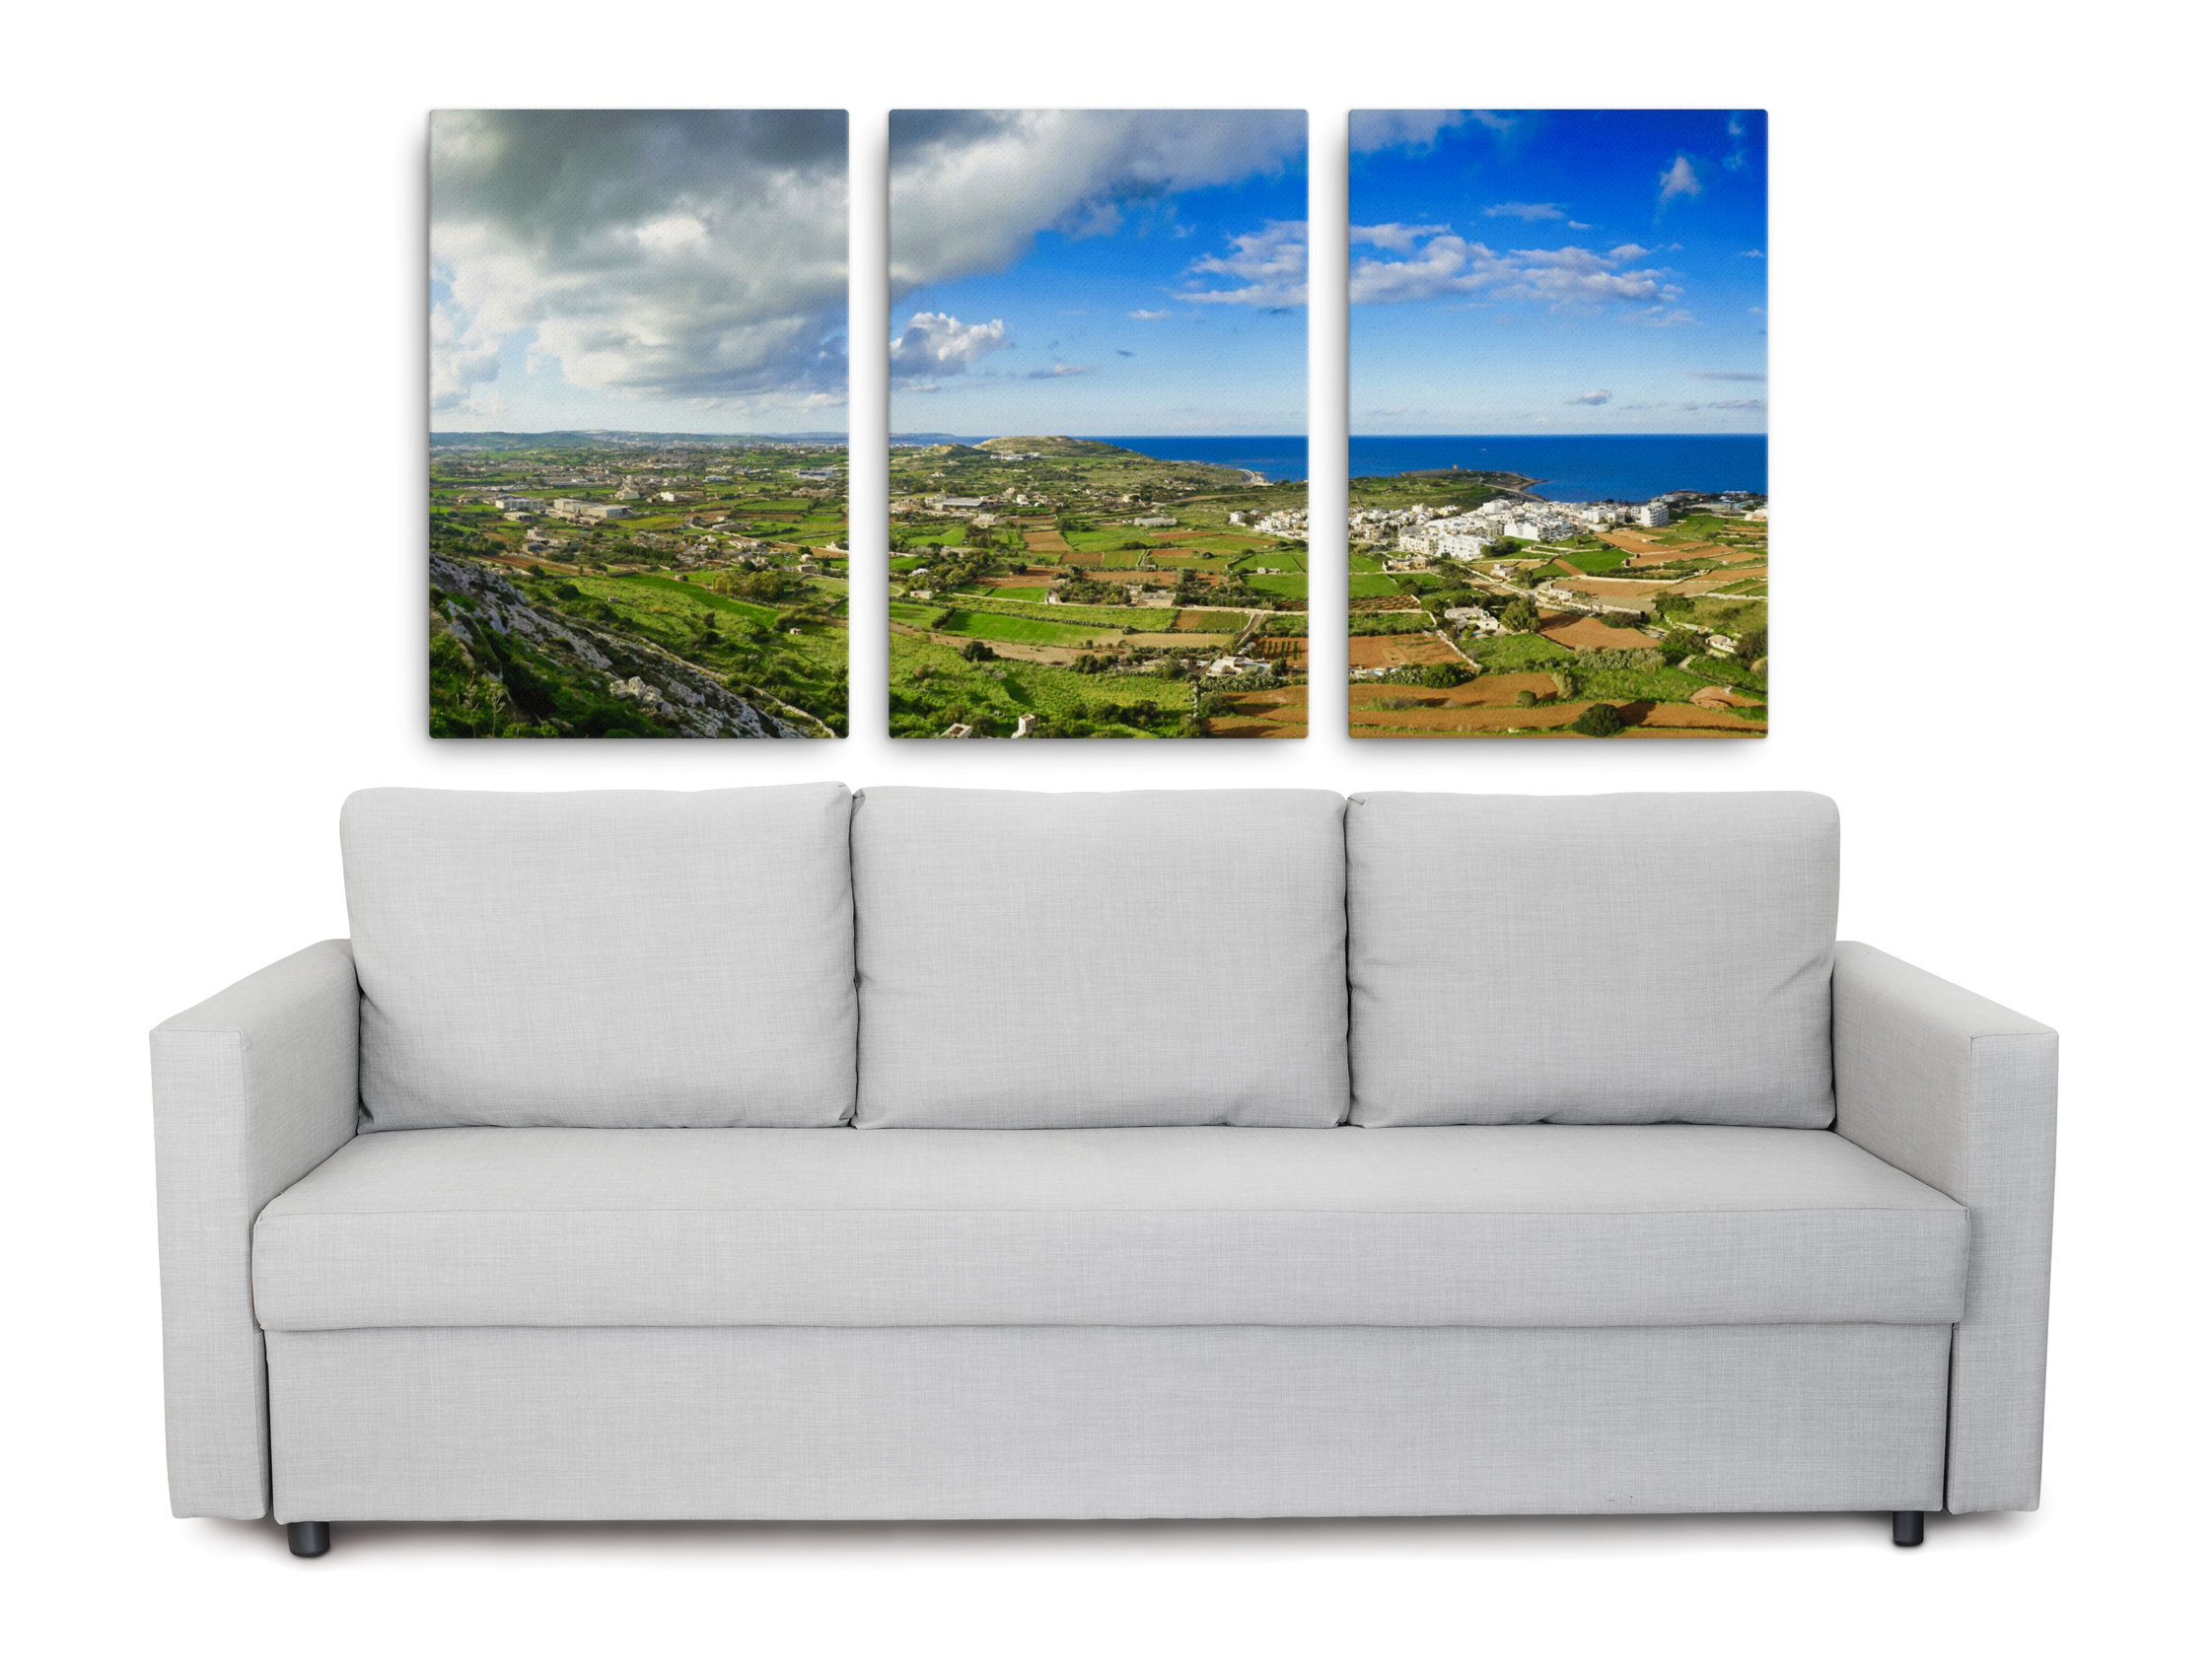 Triptych landscape prints of Malta - Top of the world